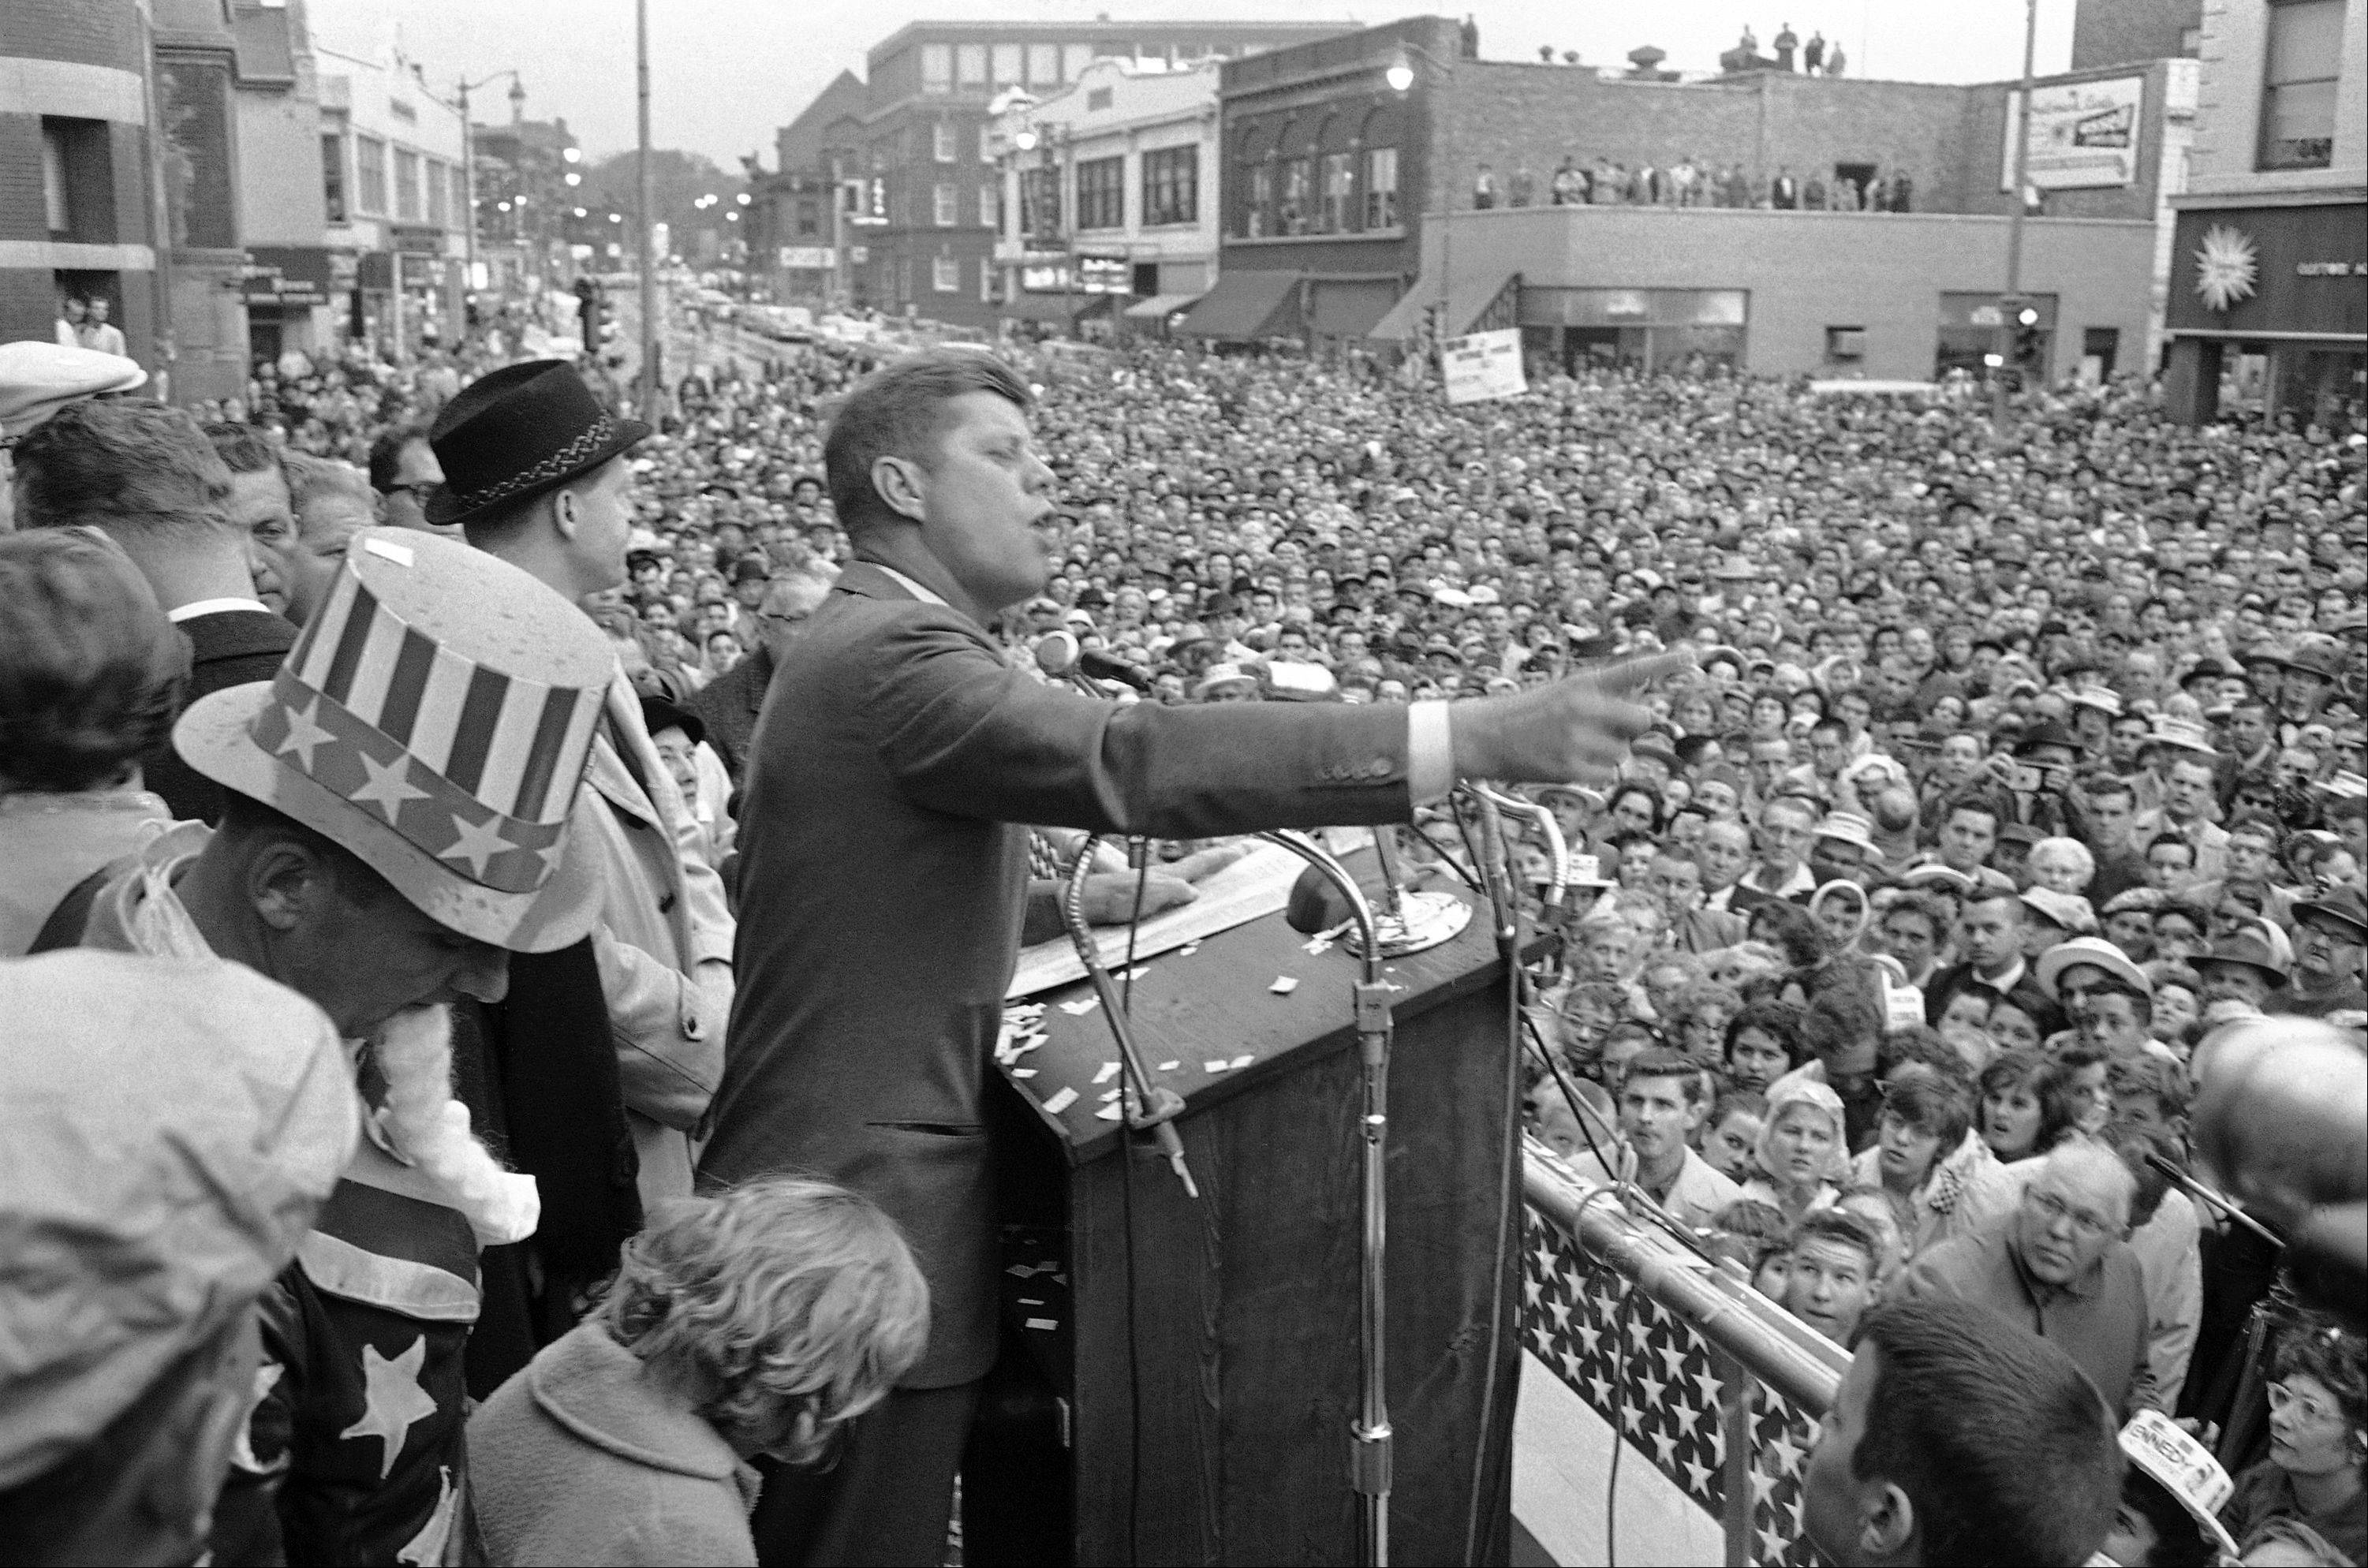 Sen. John F. Kennedy addresses a crowd of more than 10,000 packed in front of Aurora city hall on Oct. 25, 1960, as he toured numerous Chicago suburbs. Many people watched from rooftops, and Mayor Paul Egan said the crowd was the greatest assemblage in the history of Aurora.